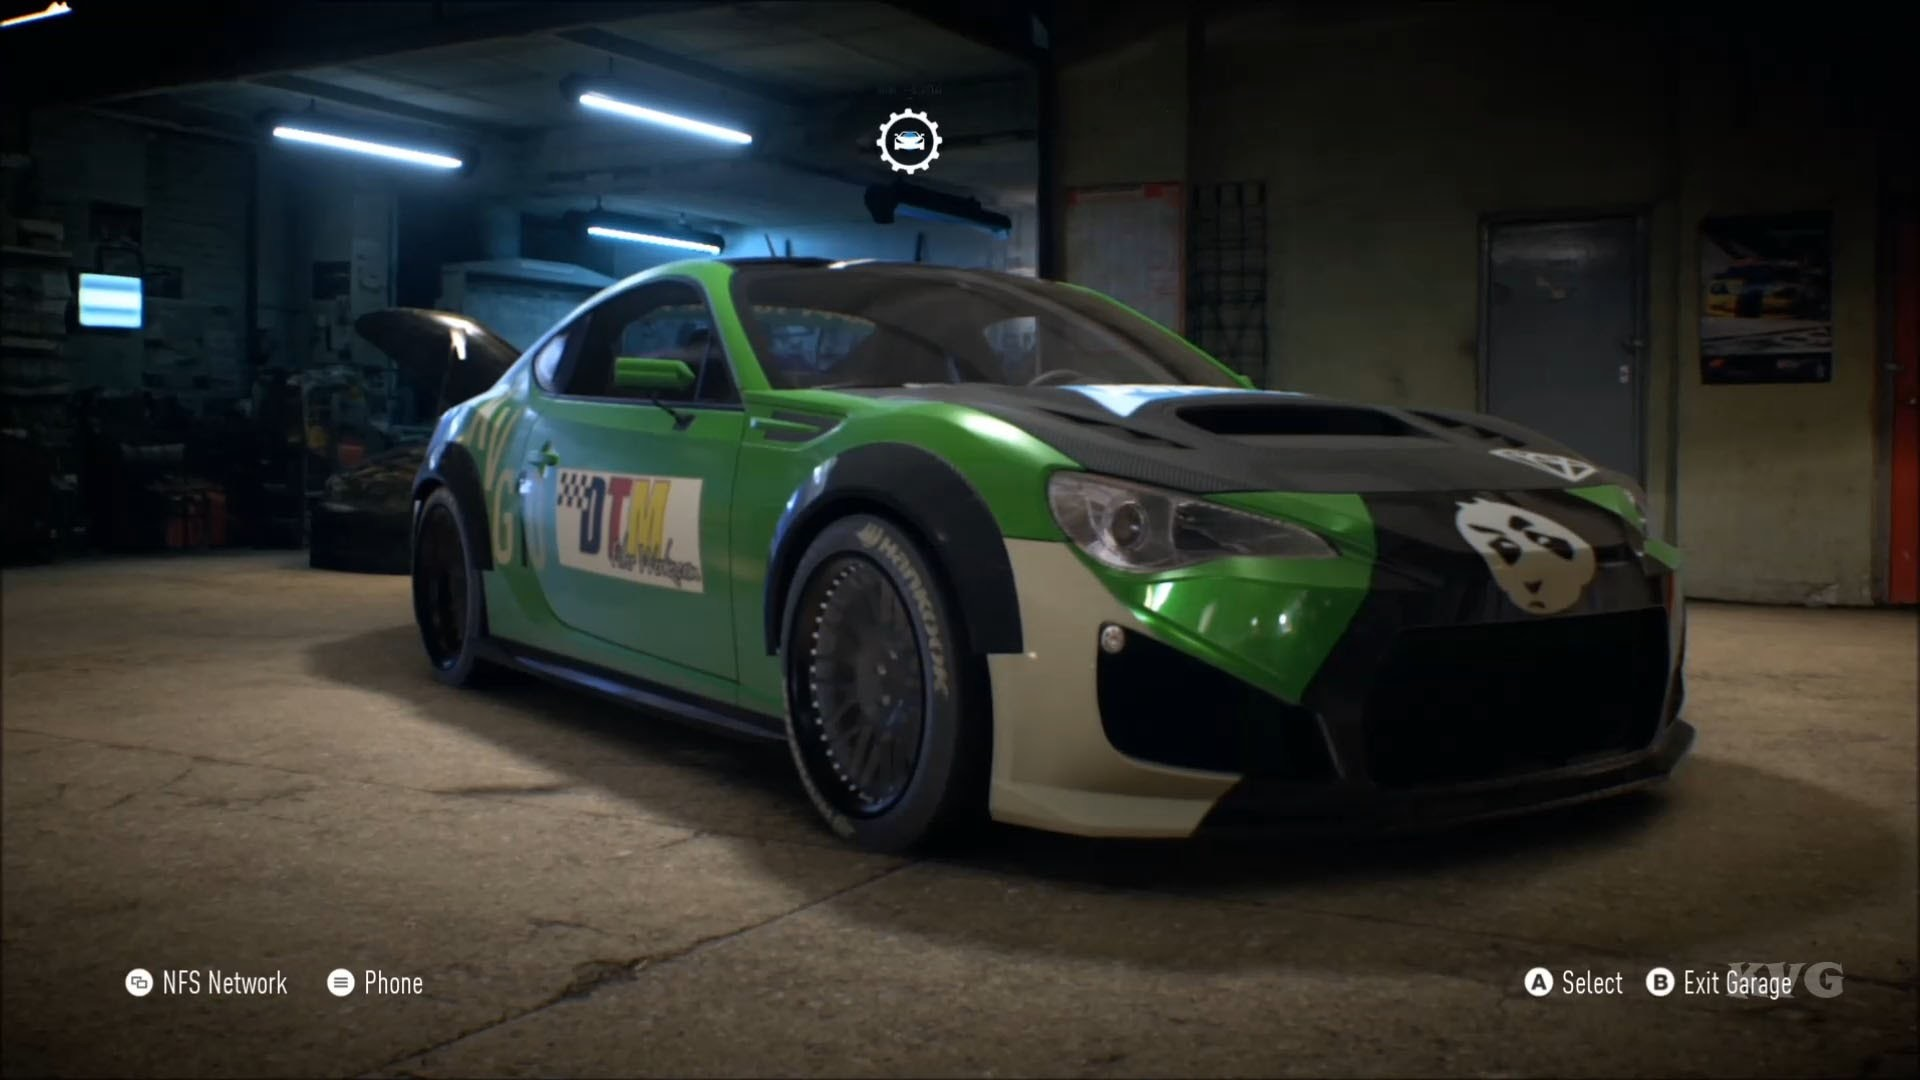 Need For Speed 2015 – Scion FR-S 2014 – Customize Car | Tuning (XboxONE HD)  [1080p] – YouTube